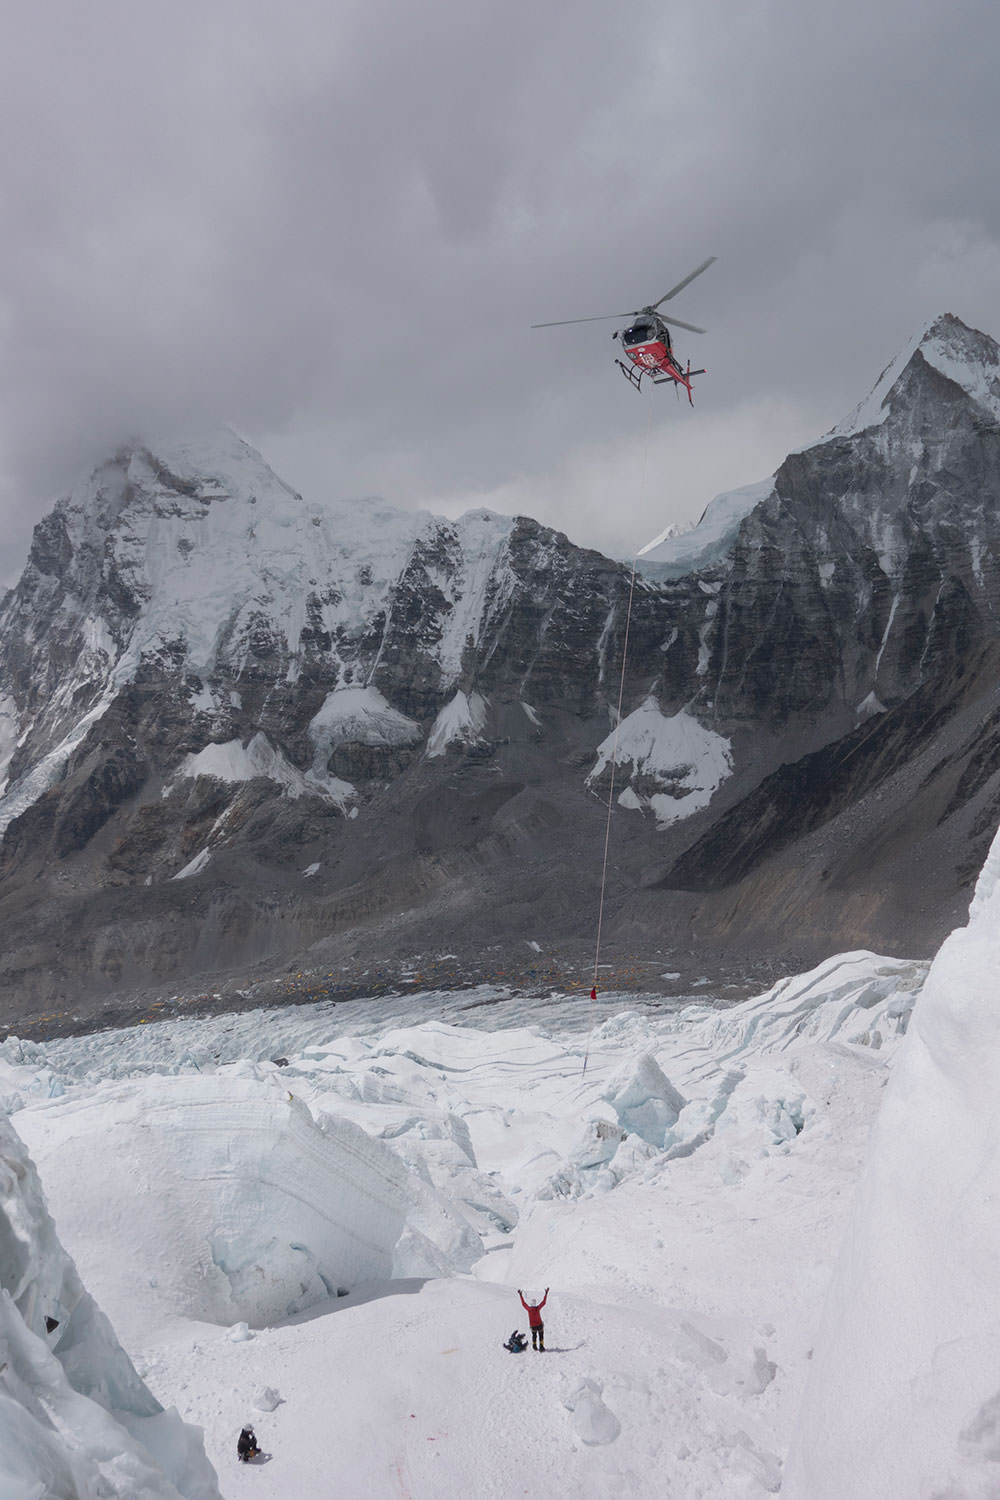 Helicopter rescue on the mountain